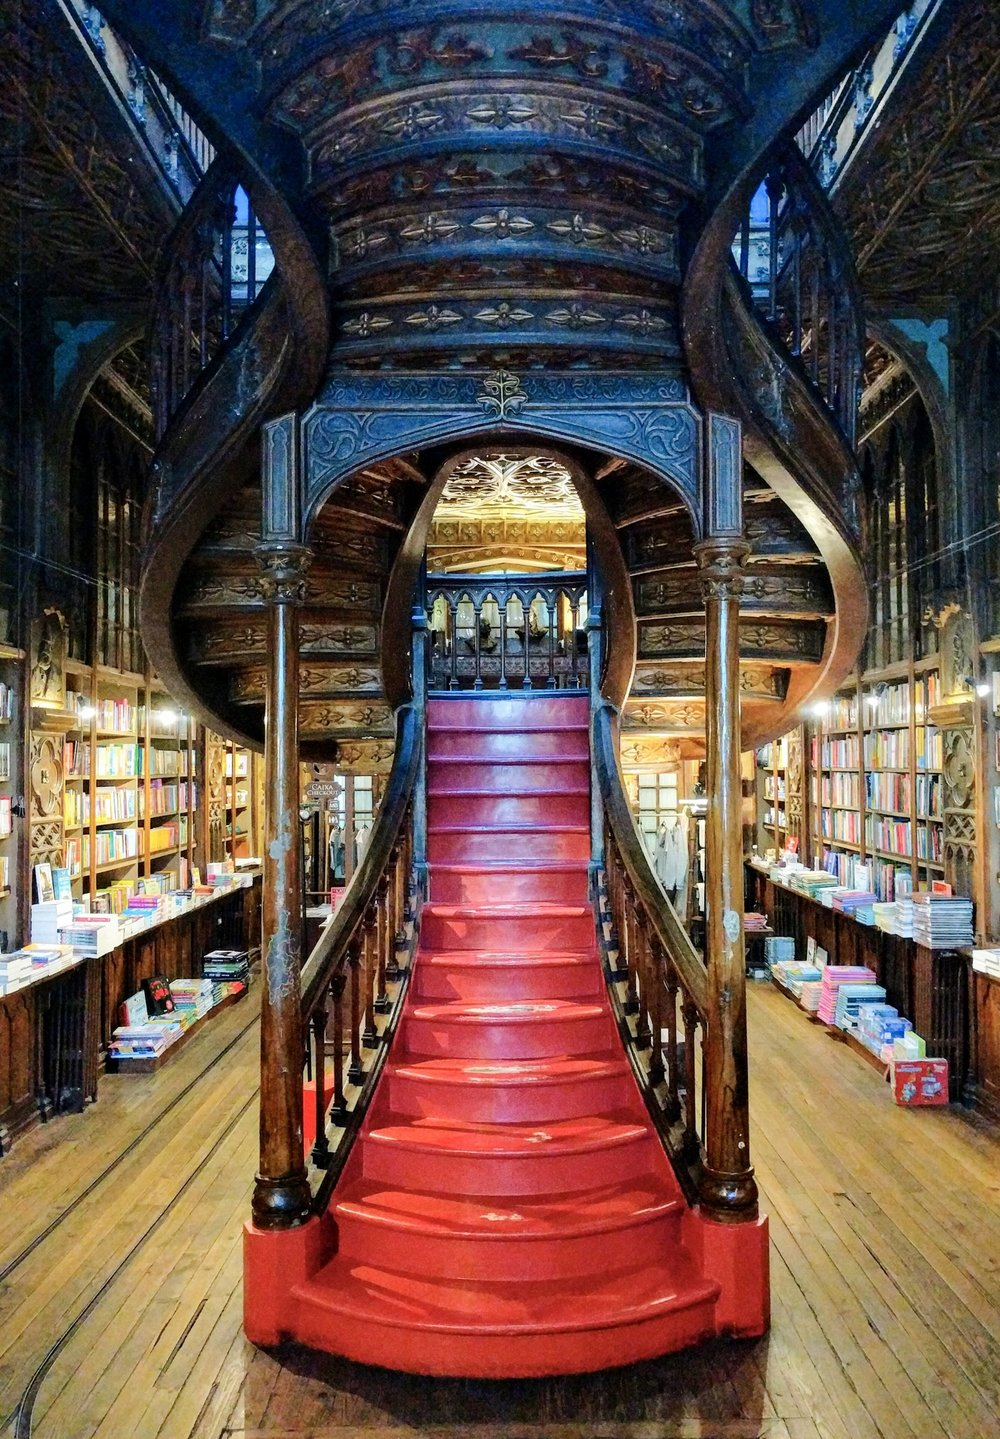 The famous staircase of Livraria Lello